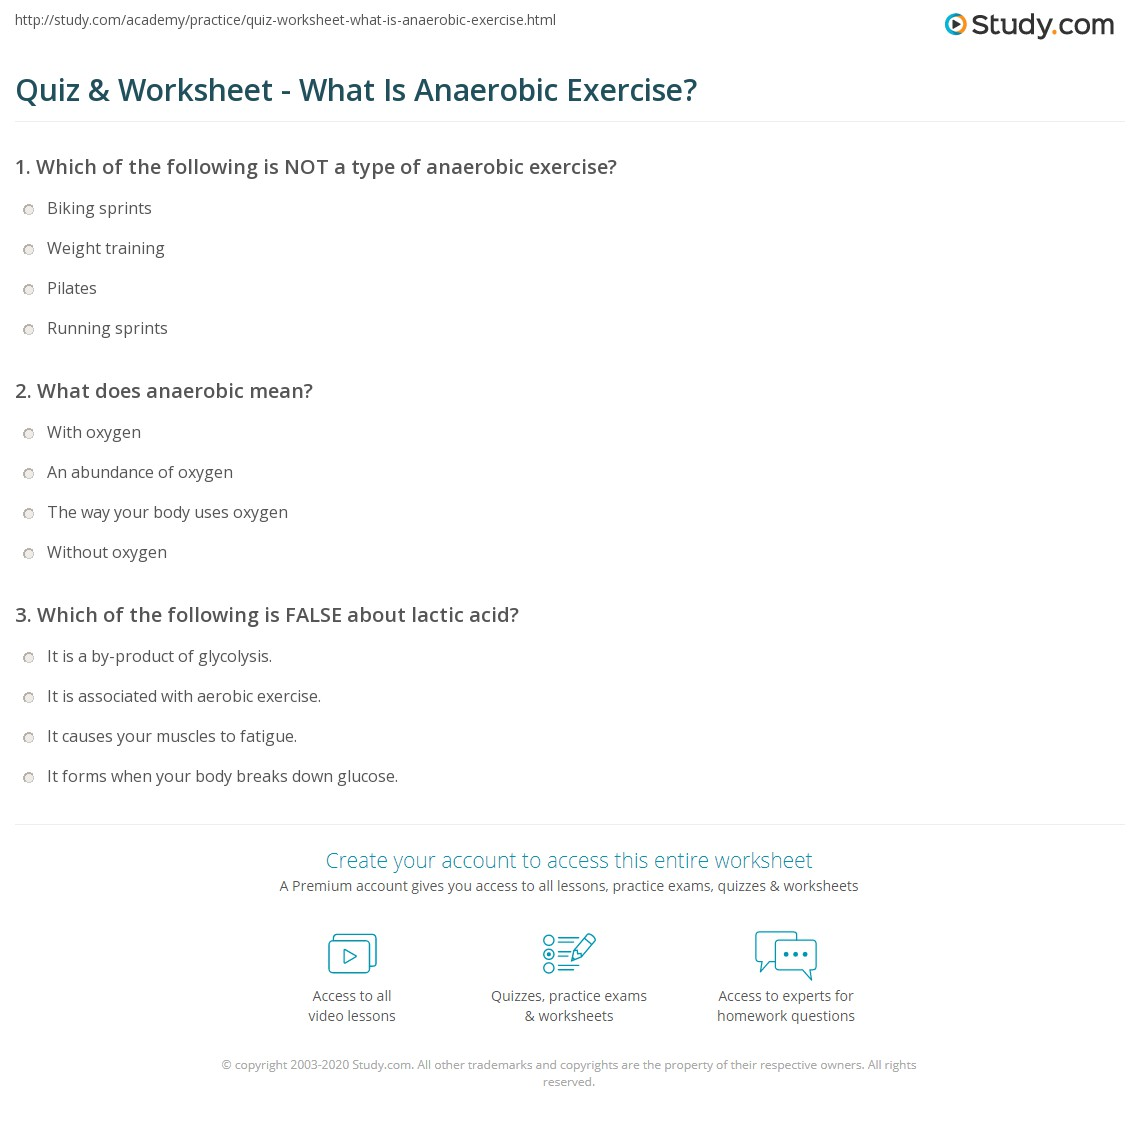 quiz & worksheet - what is anaerobic exercise? | study